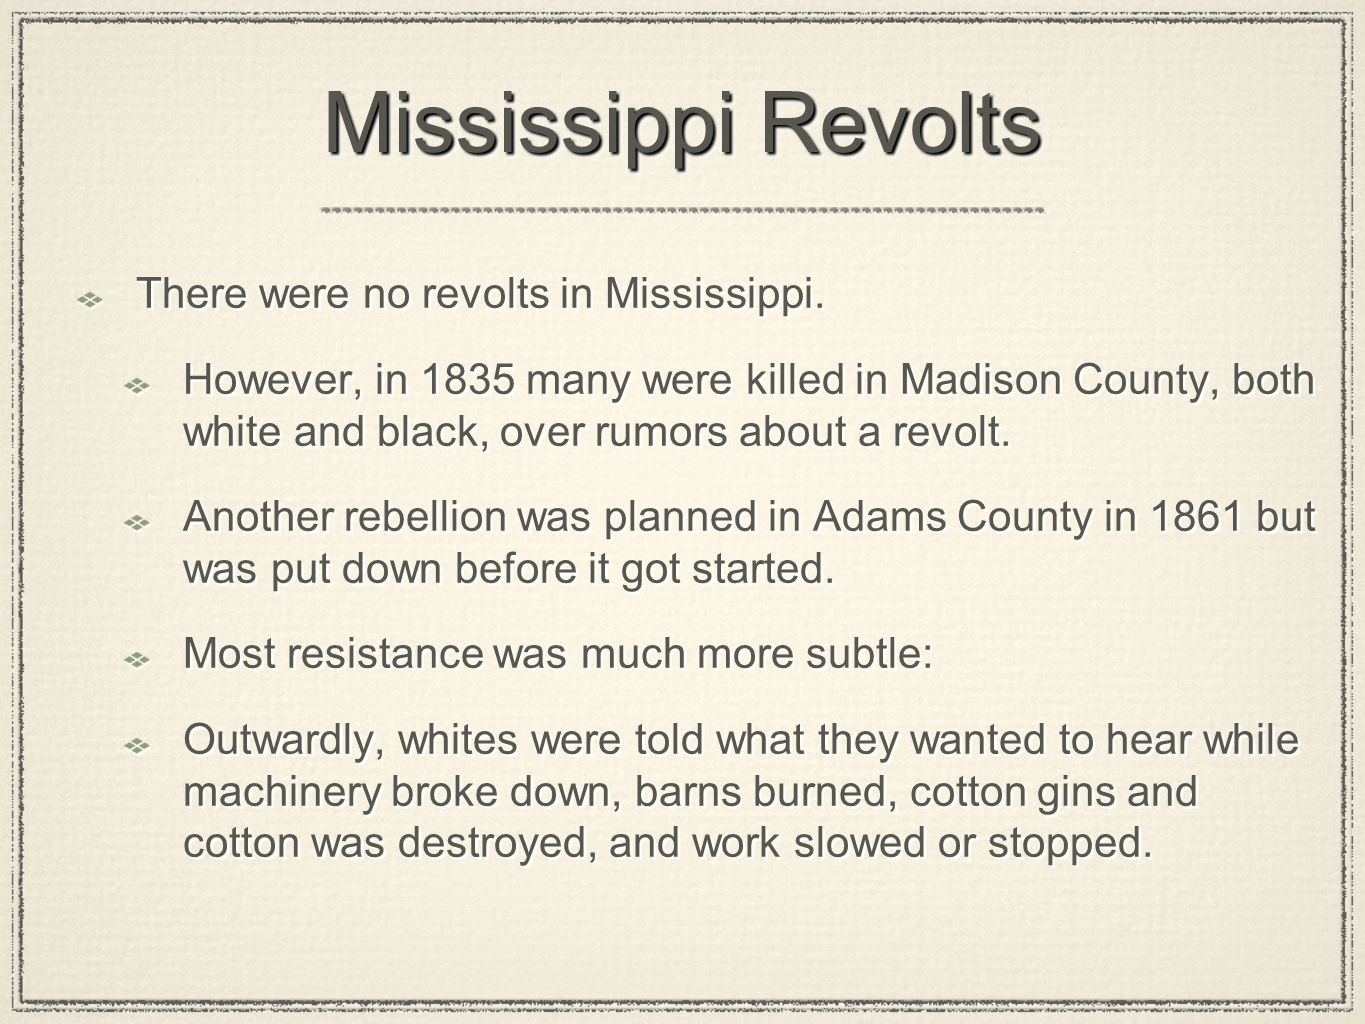 Mississippi Revolts There were no revolts in Mississippi. However, in 1835 many were killed in Madison County, both white and black, over rumors about